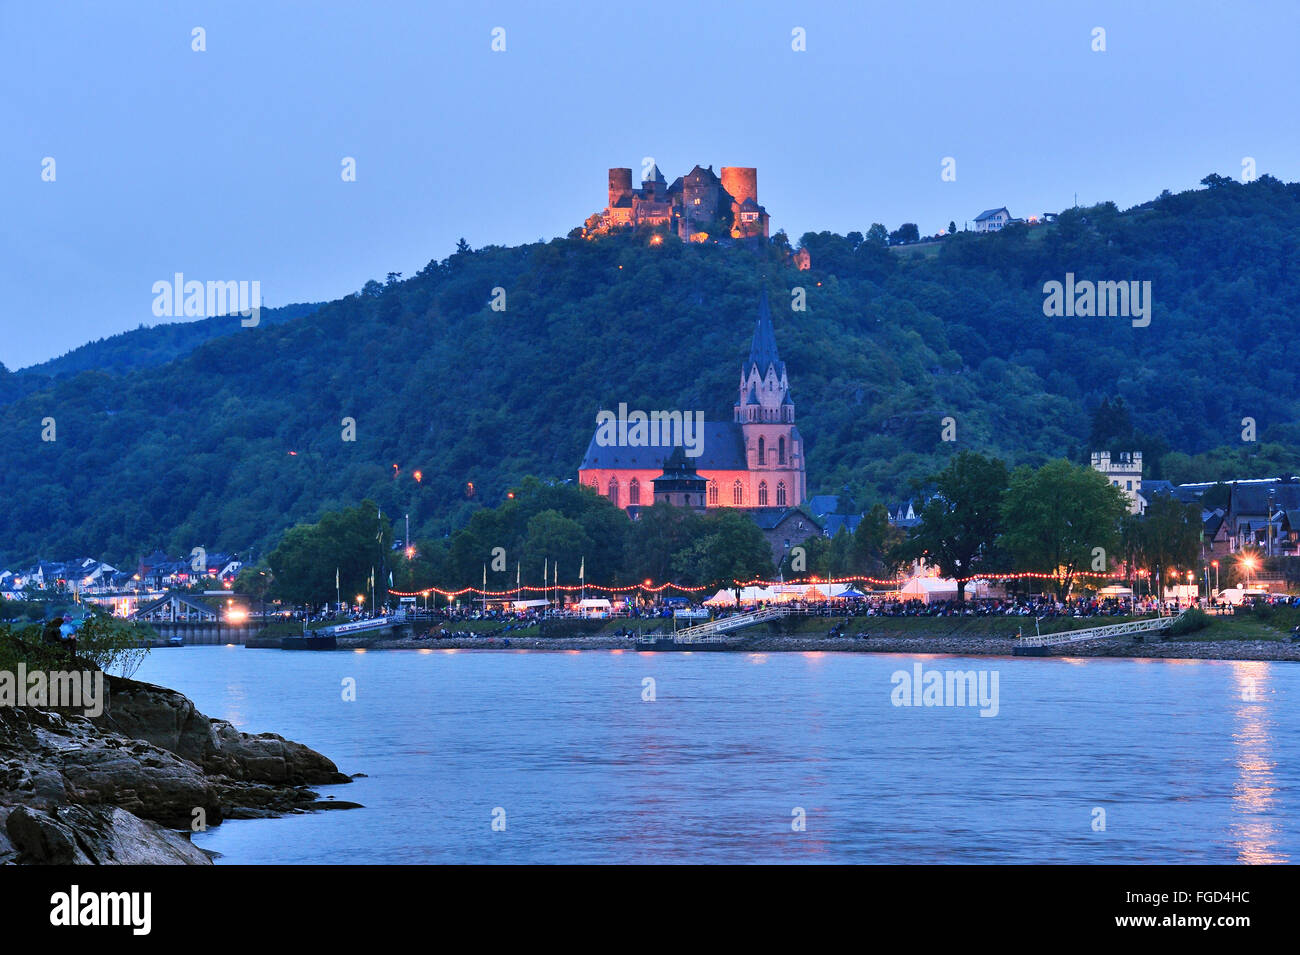 Illuminated town Oberwesel and Schönburg Castle at the festival of Rhein in Flammen, Upper Middle Rhine Valley, - Stock Image